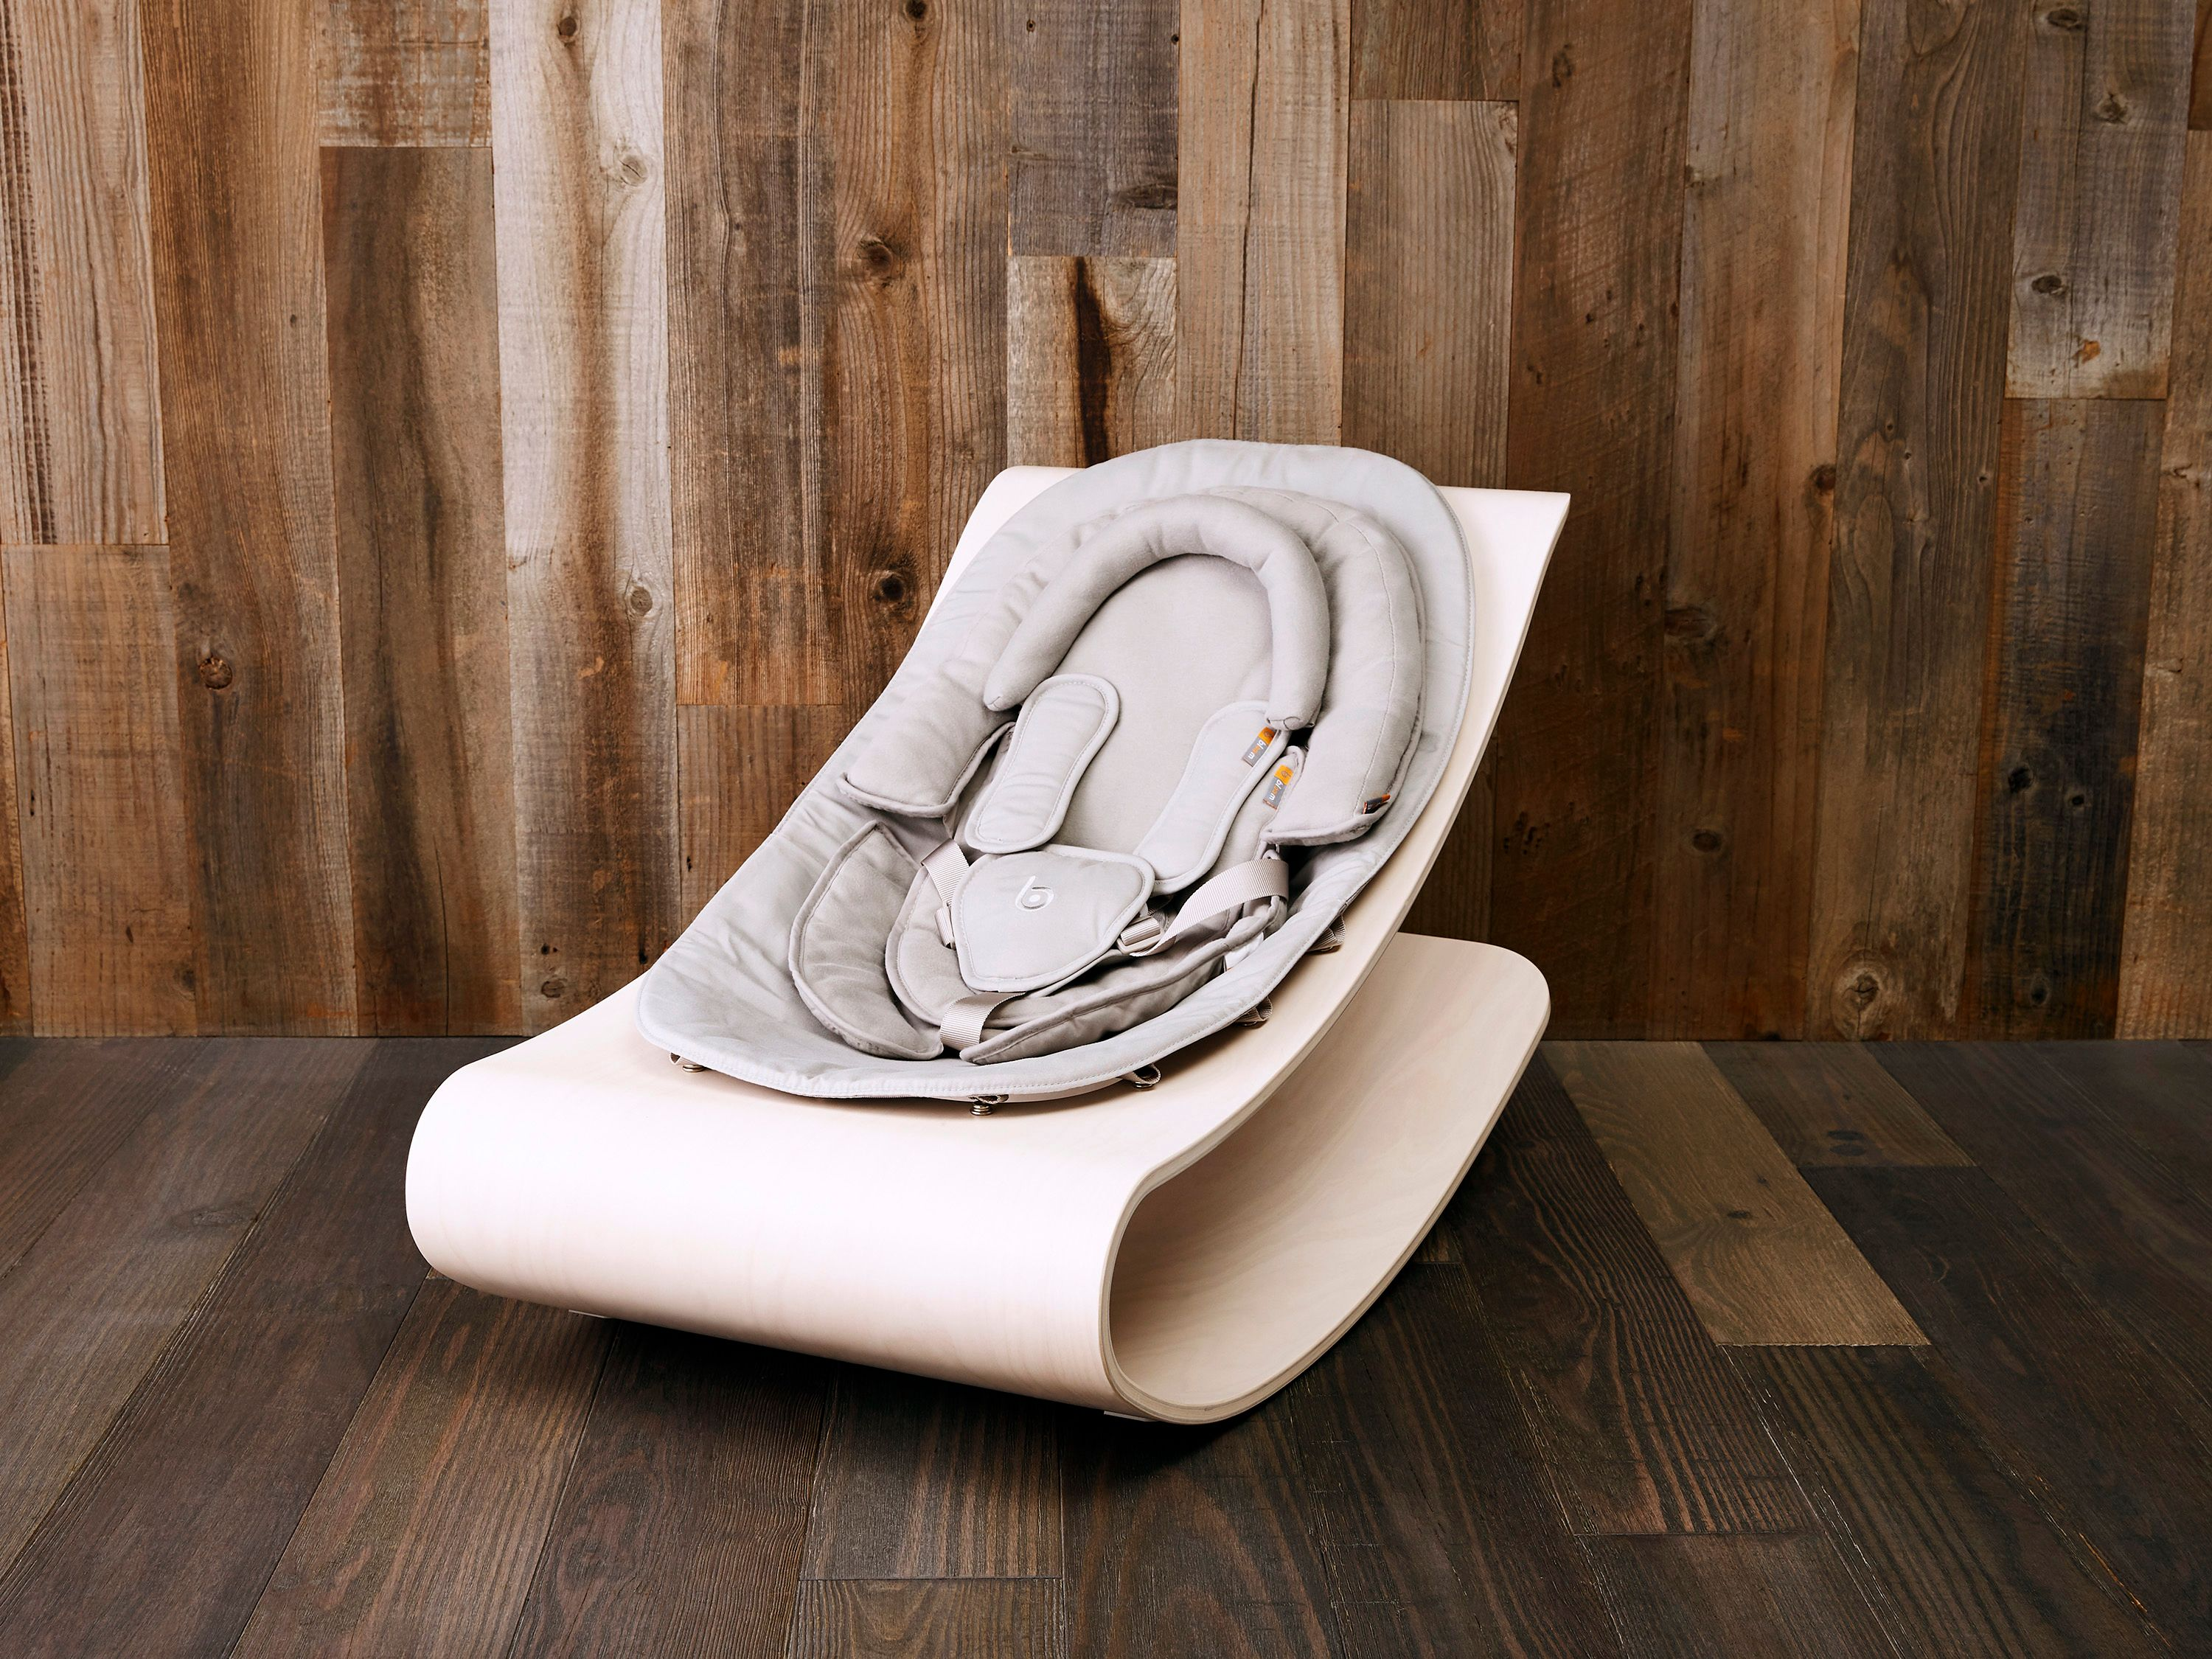 Baby bouncers and swing chairs